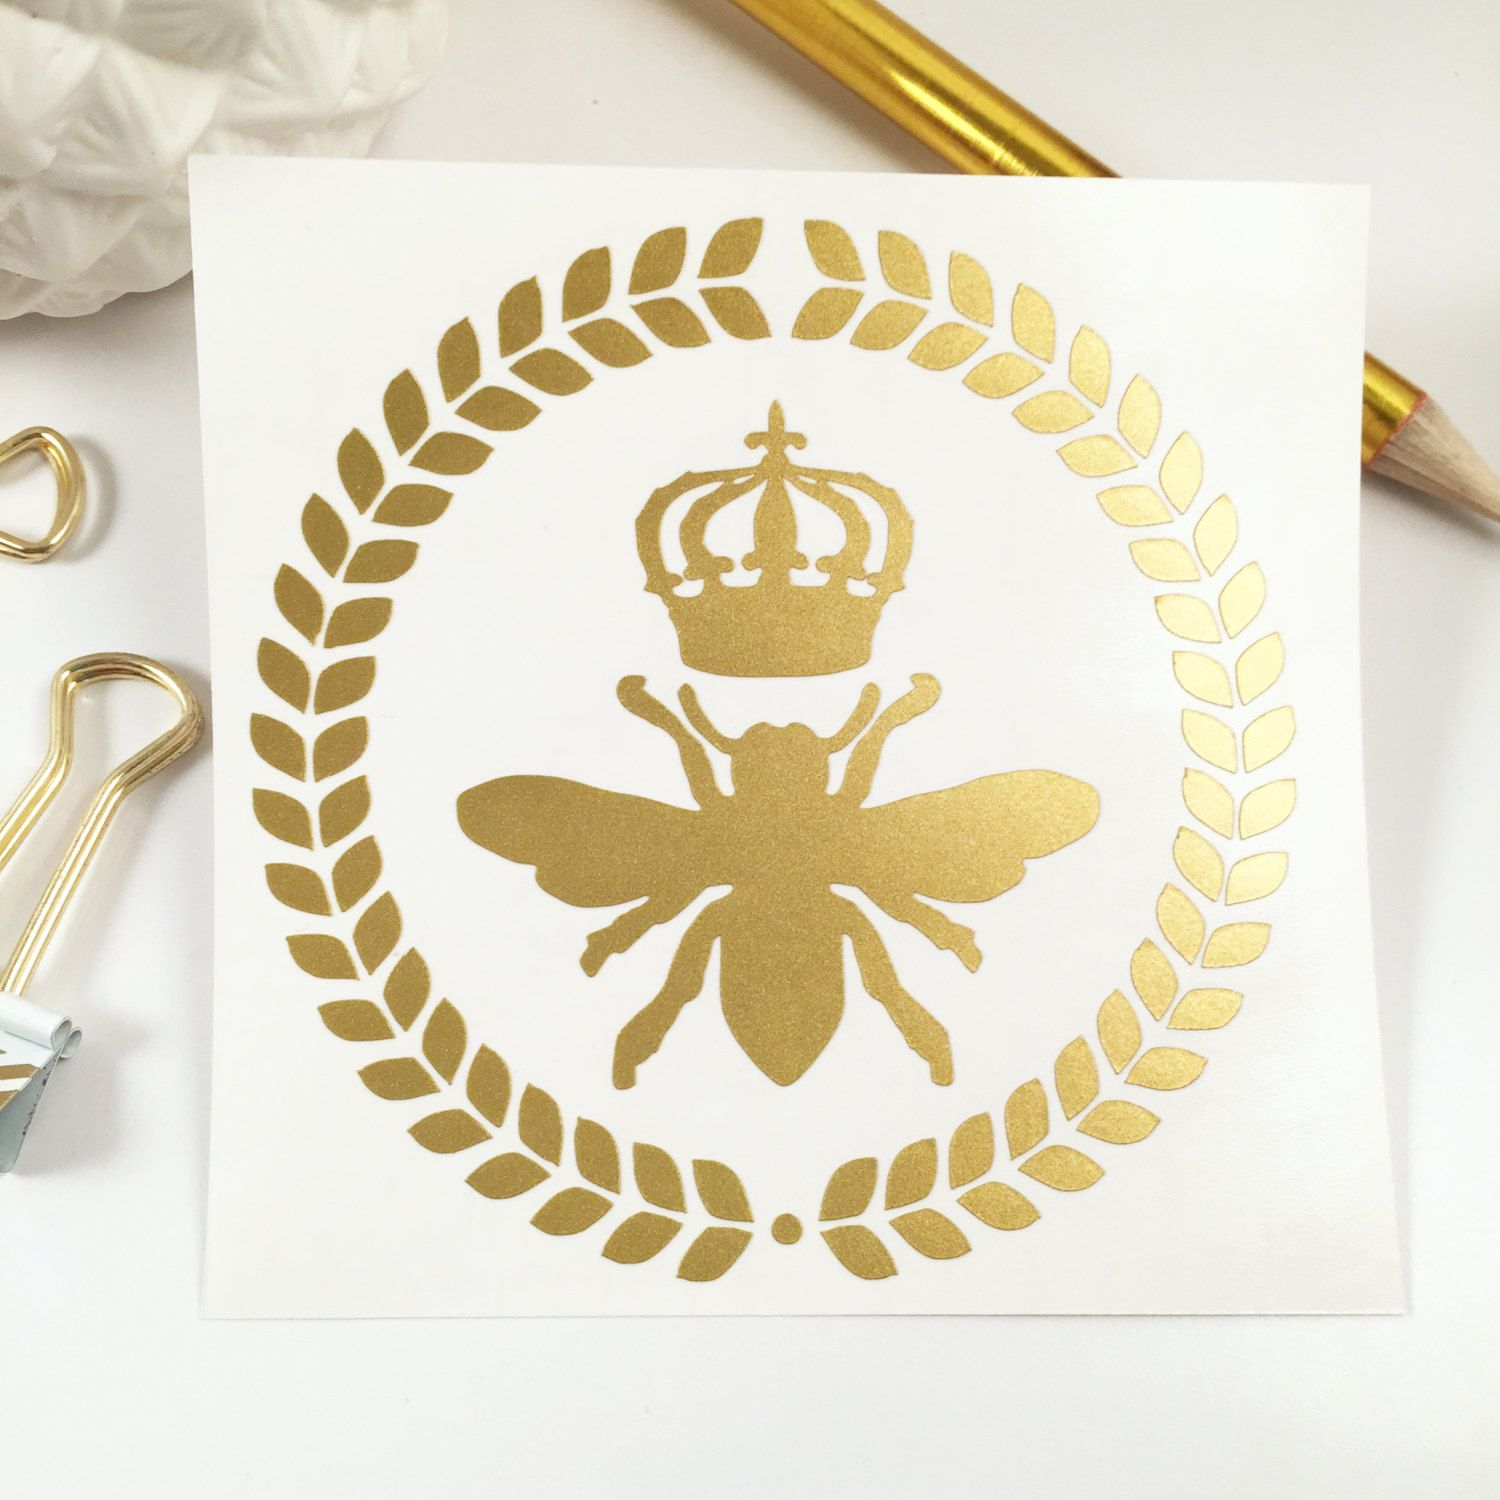 Gold queen bee decal sticker car decal laptop decal